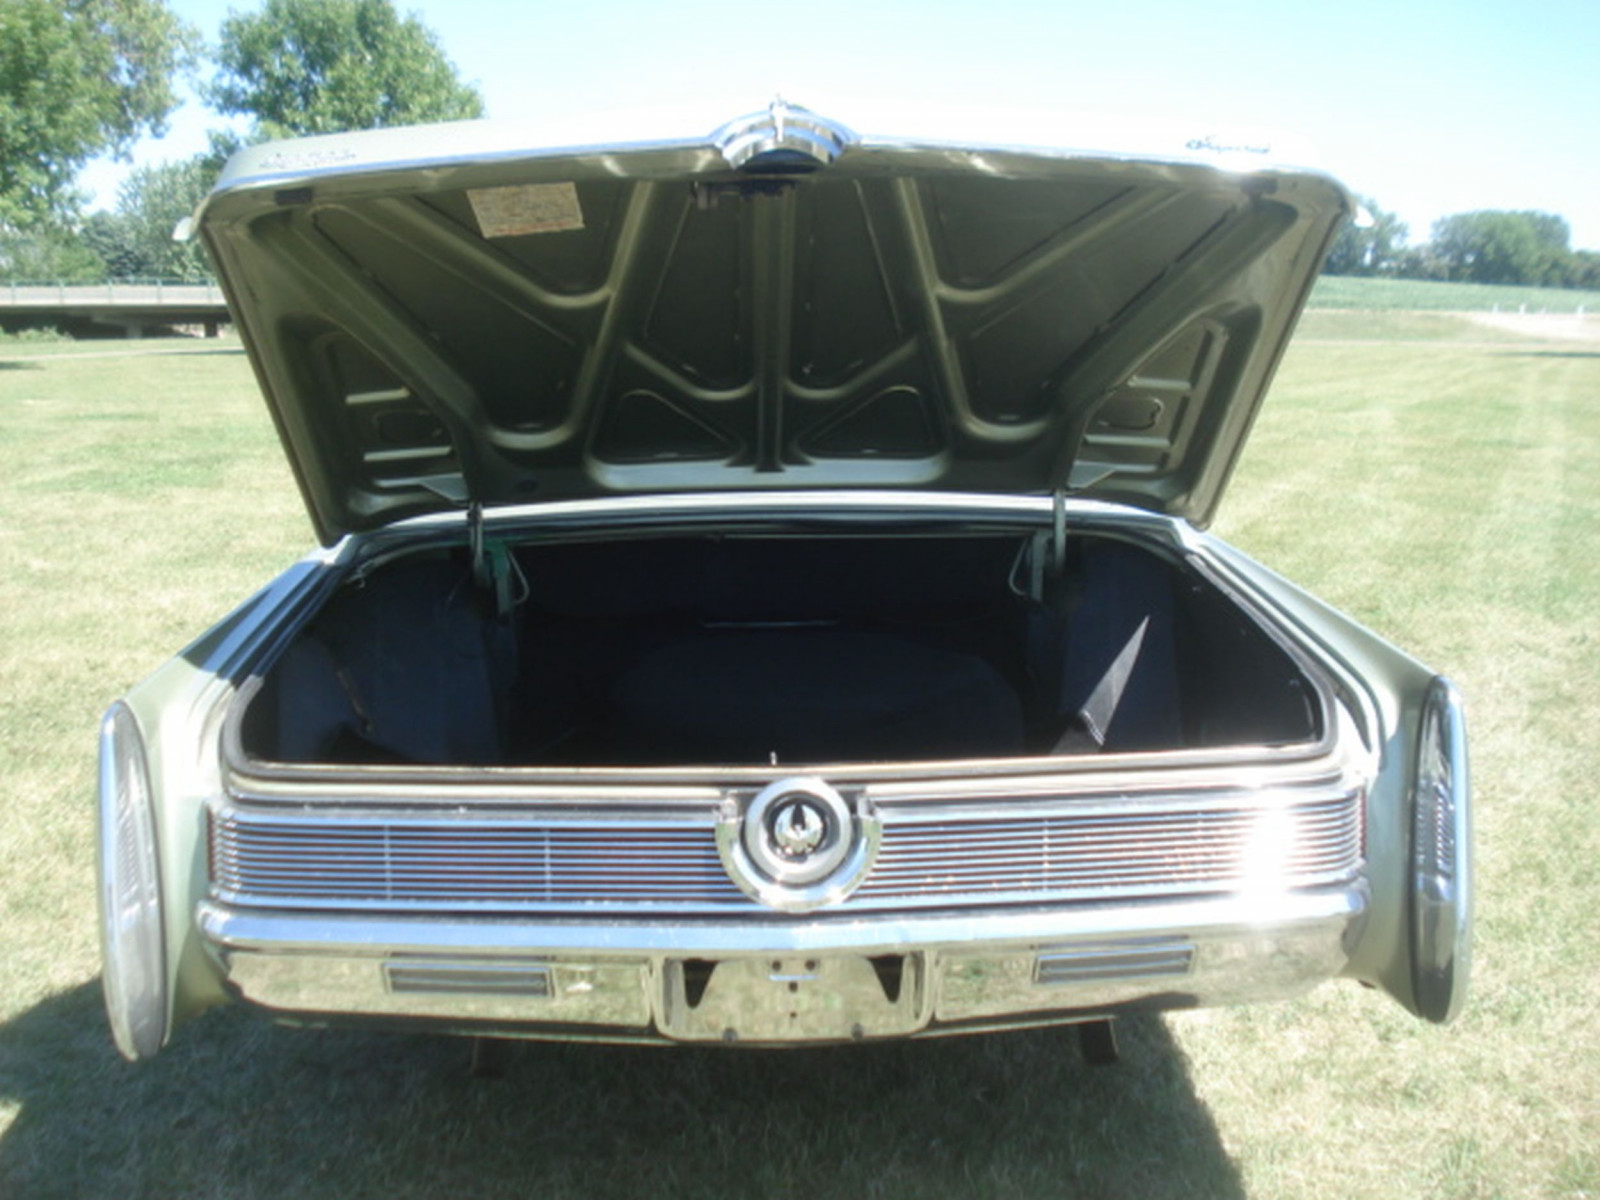 1968 Chrysler Imperial Crown Convertible - Image 13